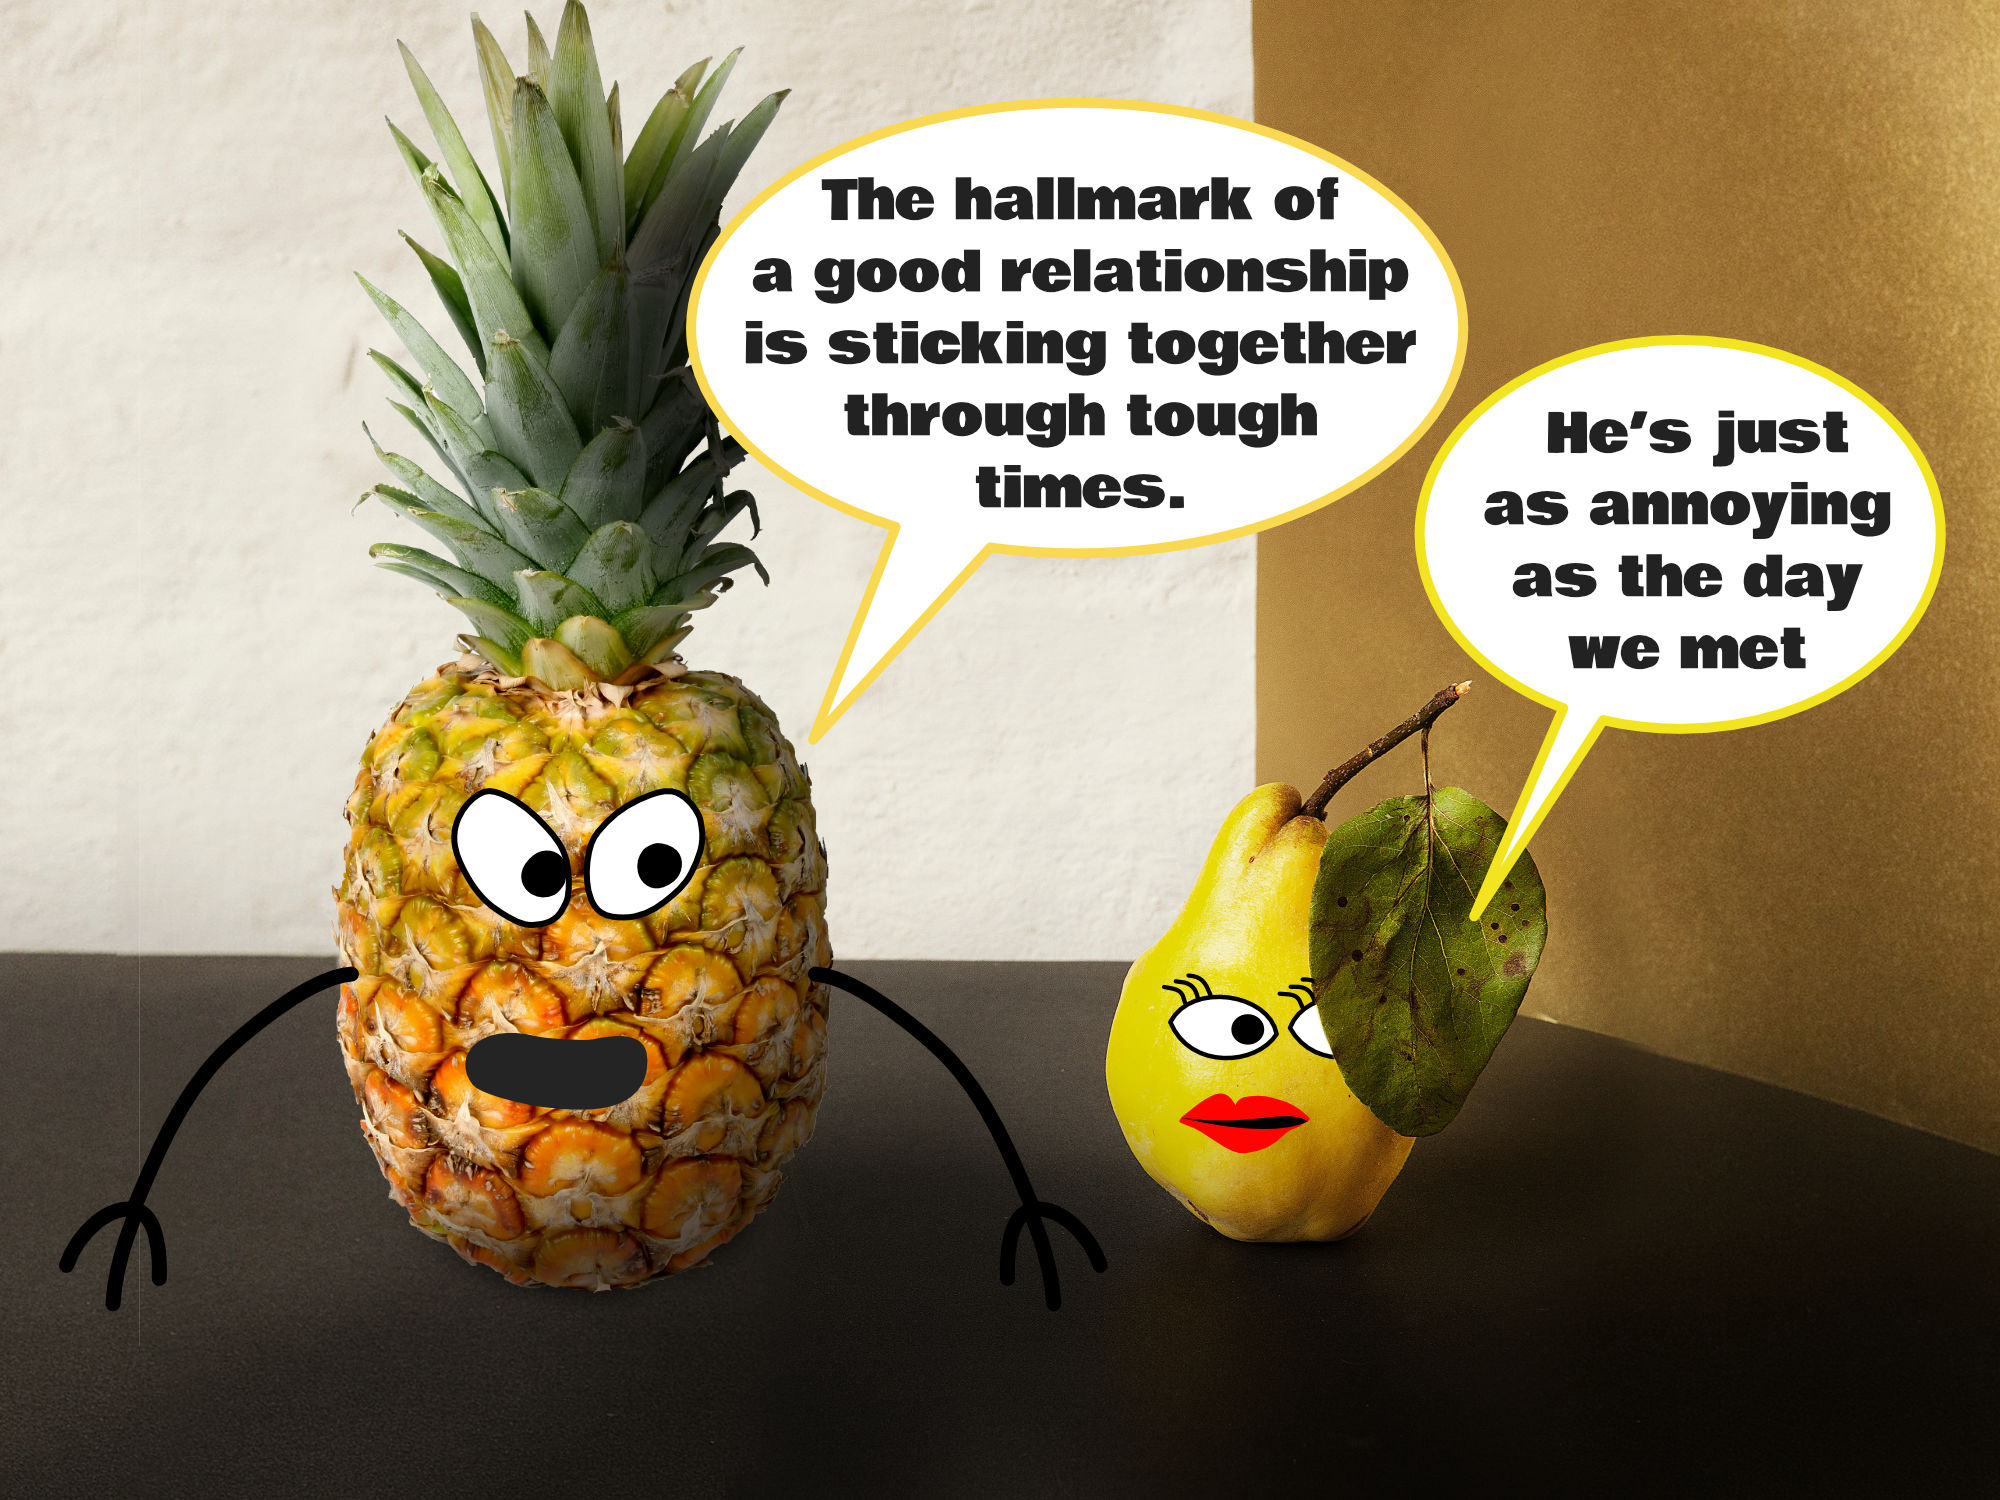 What are the Hallmarks of our Relationship?